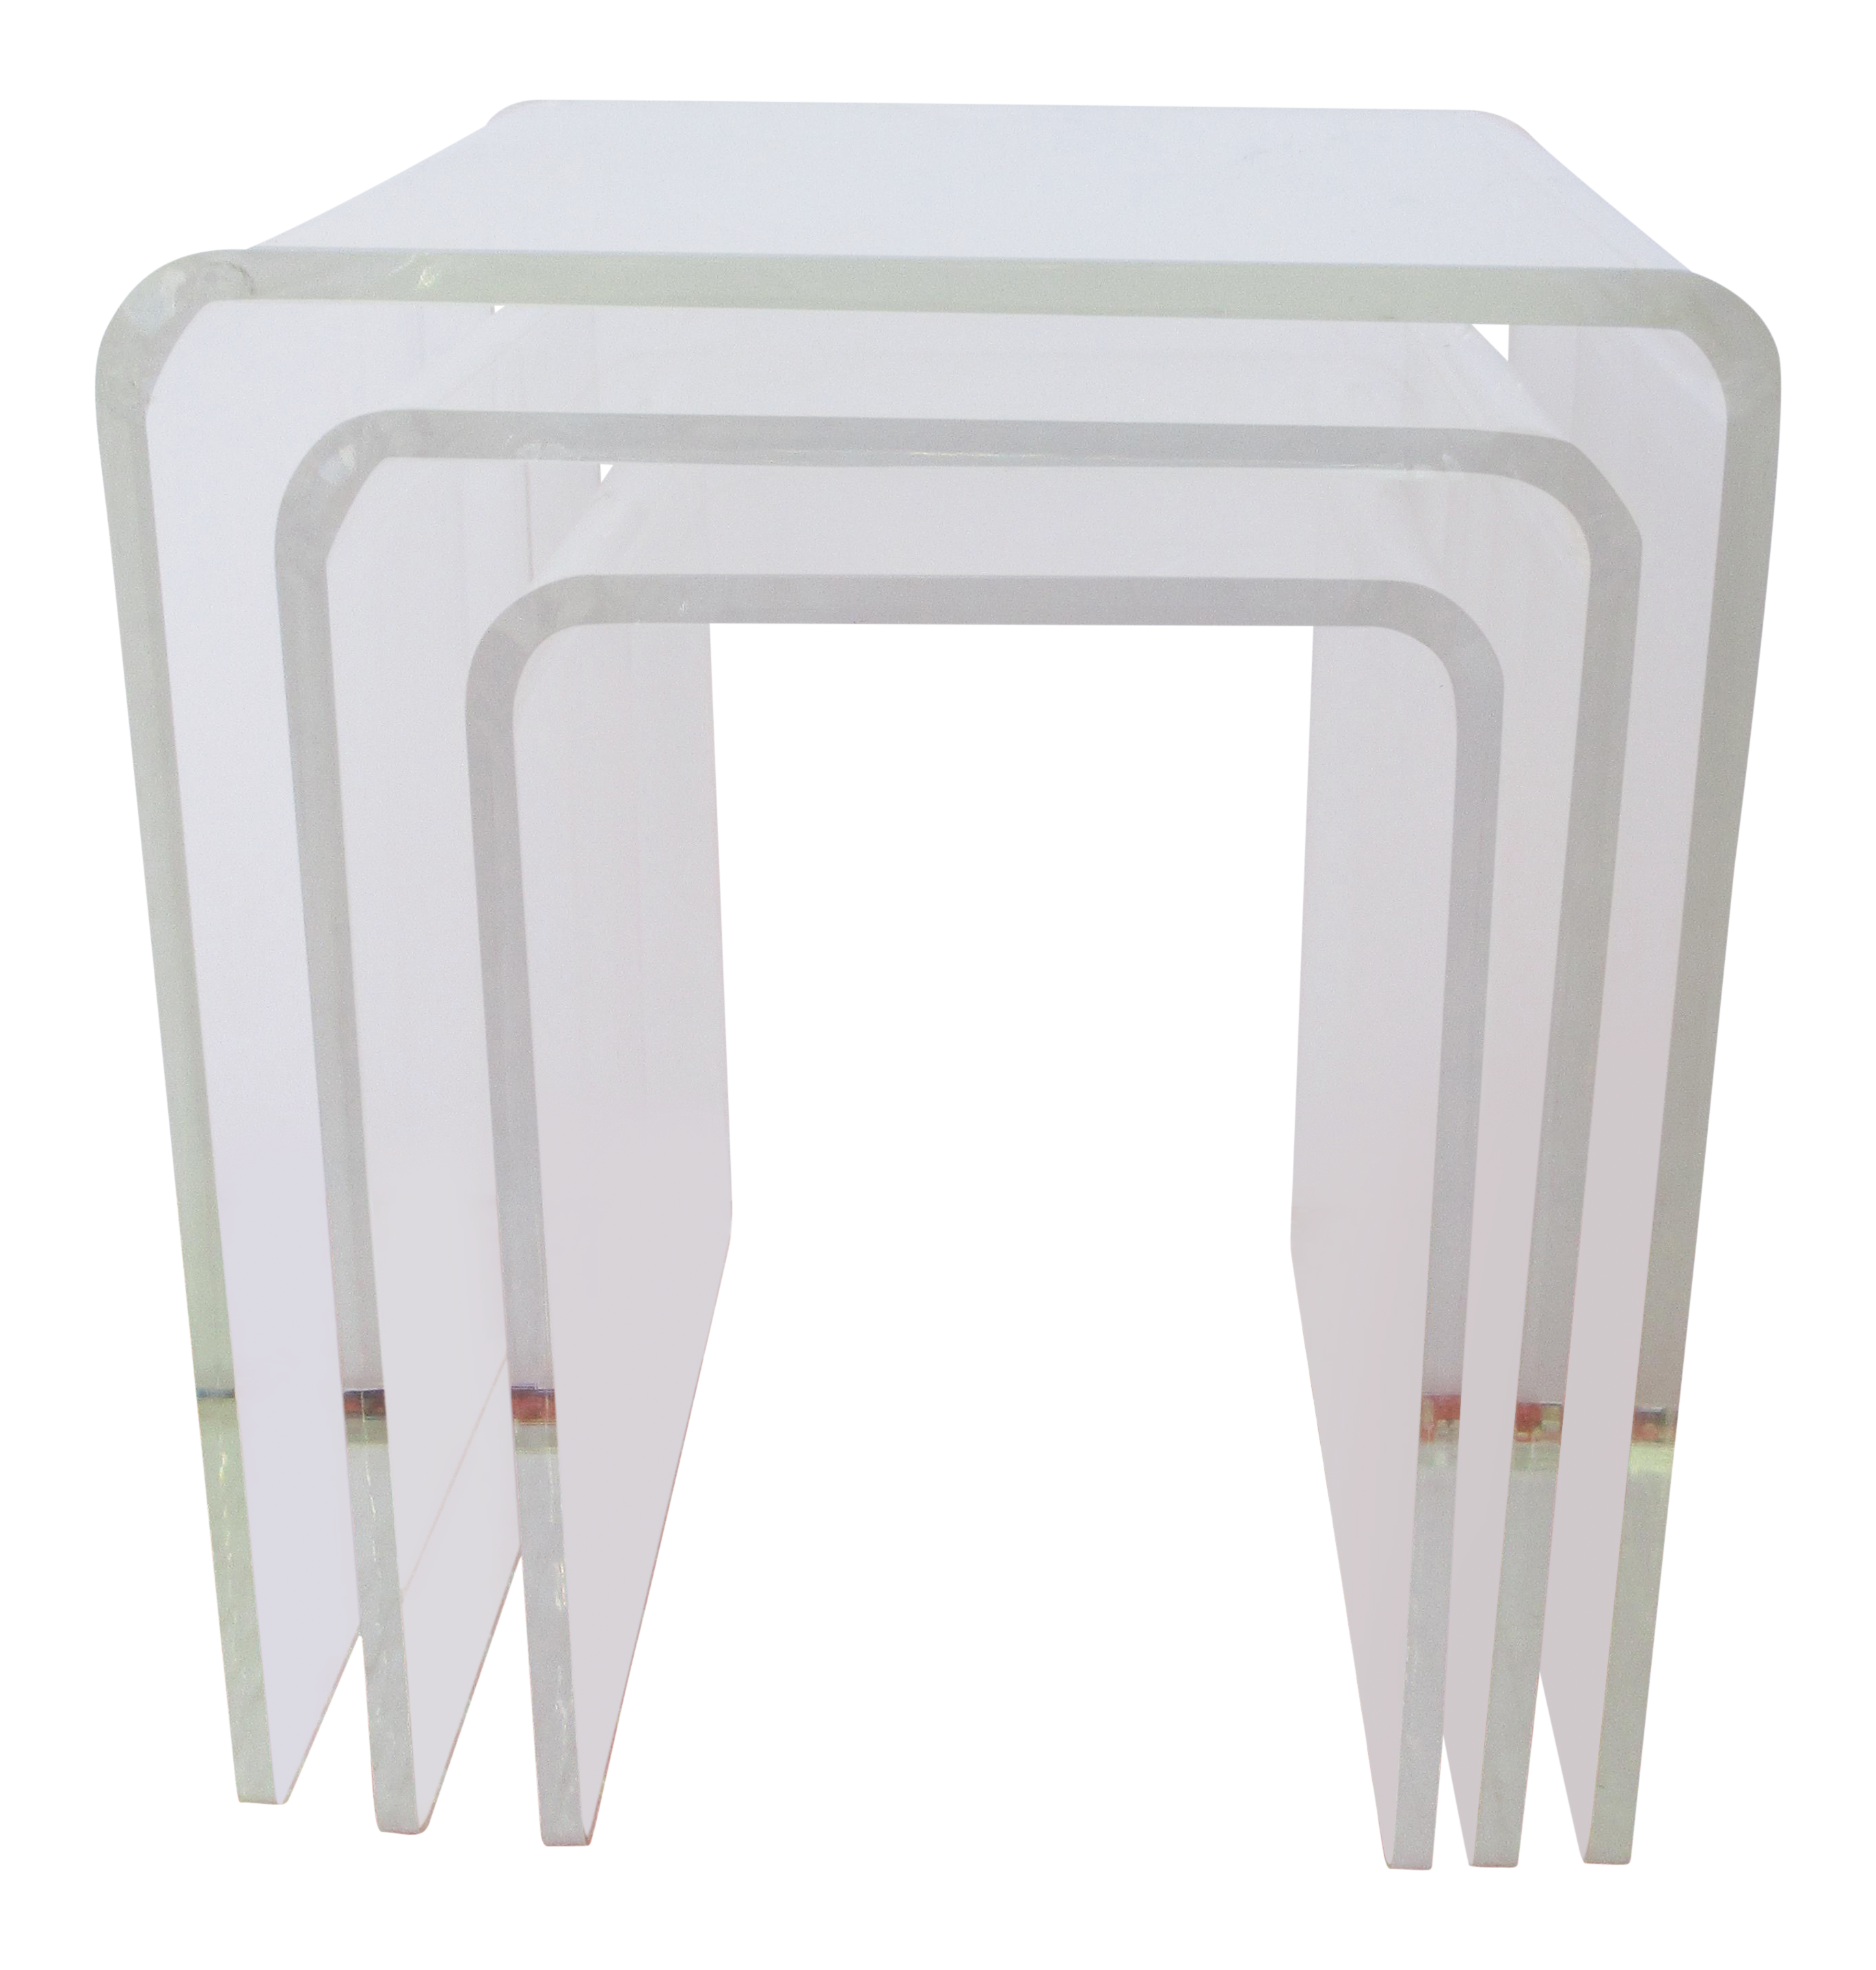 Mid-Century Lucite Nesting Tables - Set of 3 - Image 1 of 13  sc 1 st  Chairish & Mid-Century Lucite Nesting Tables - Set of 3 | Chairish